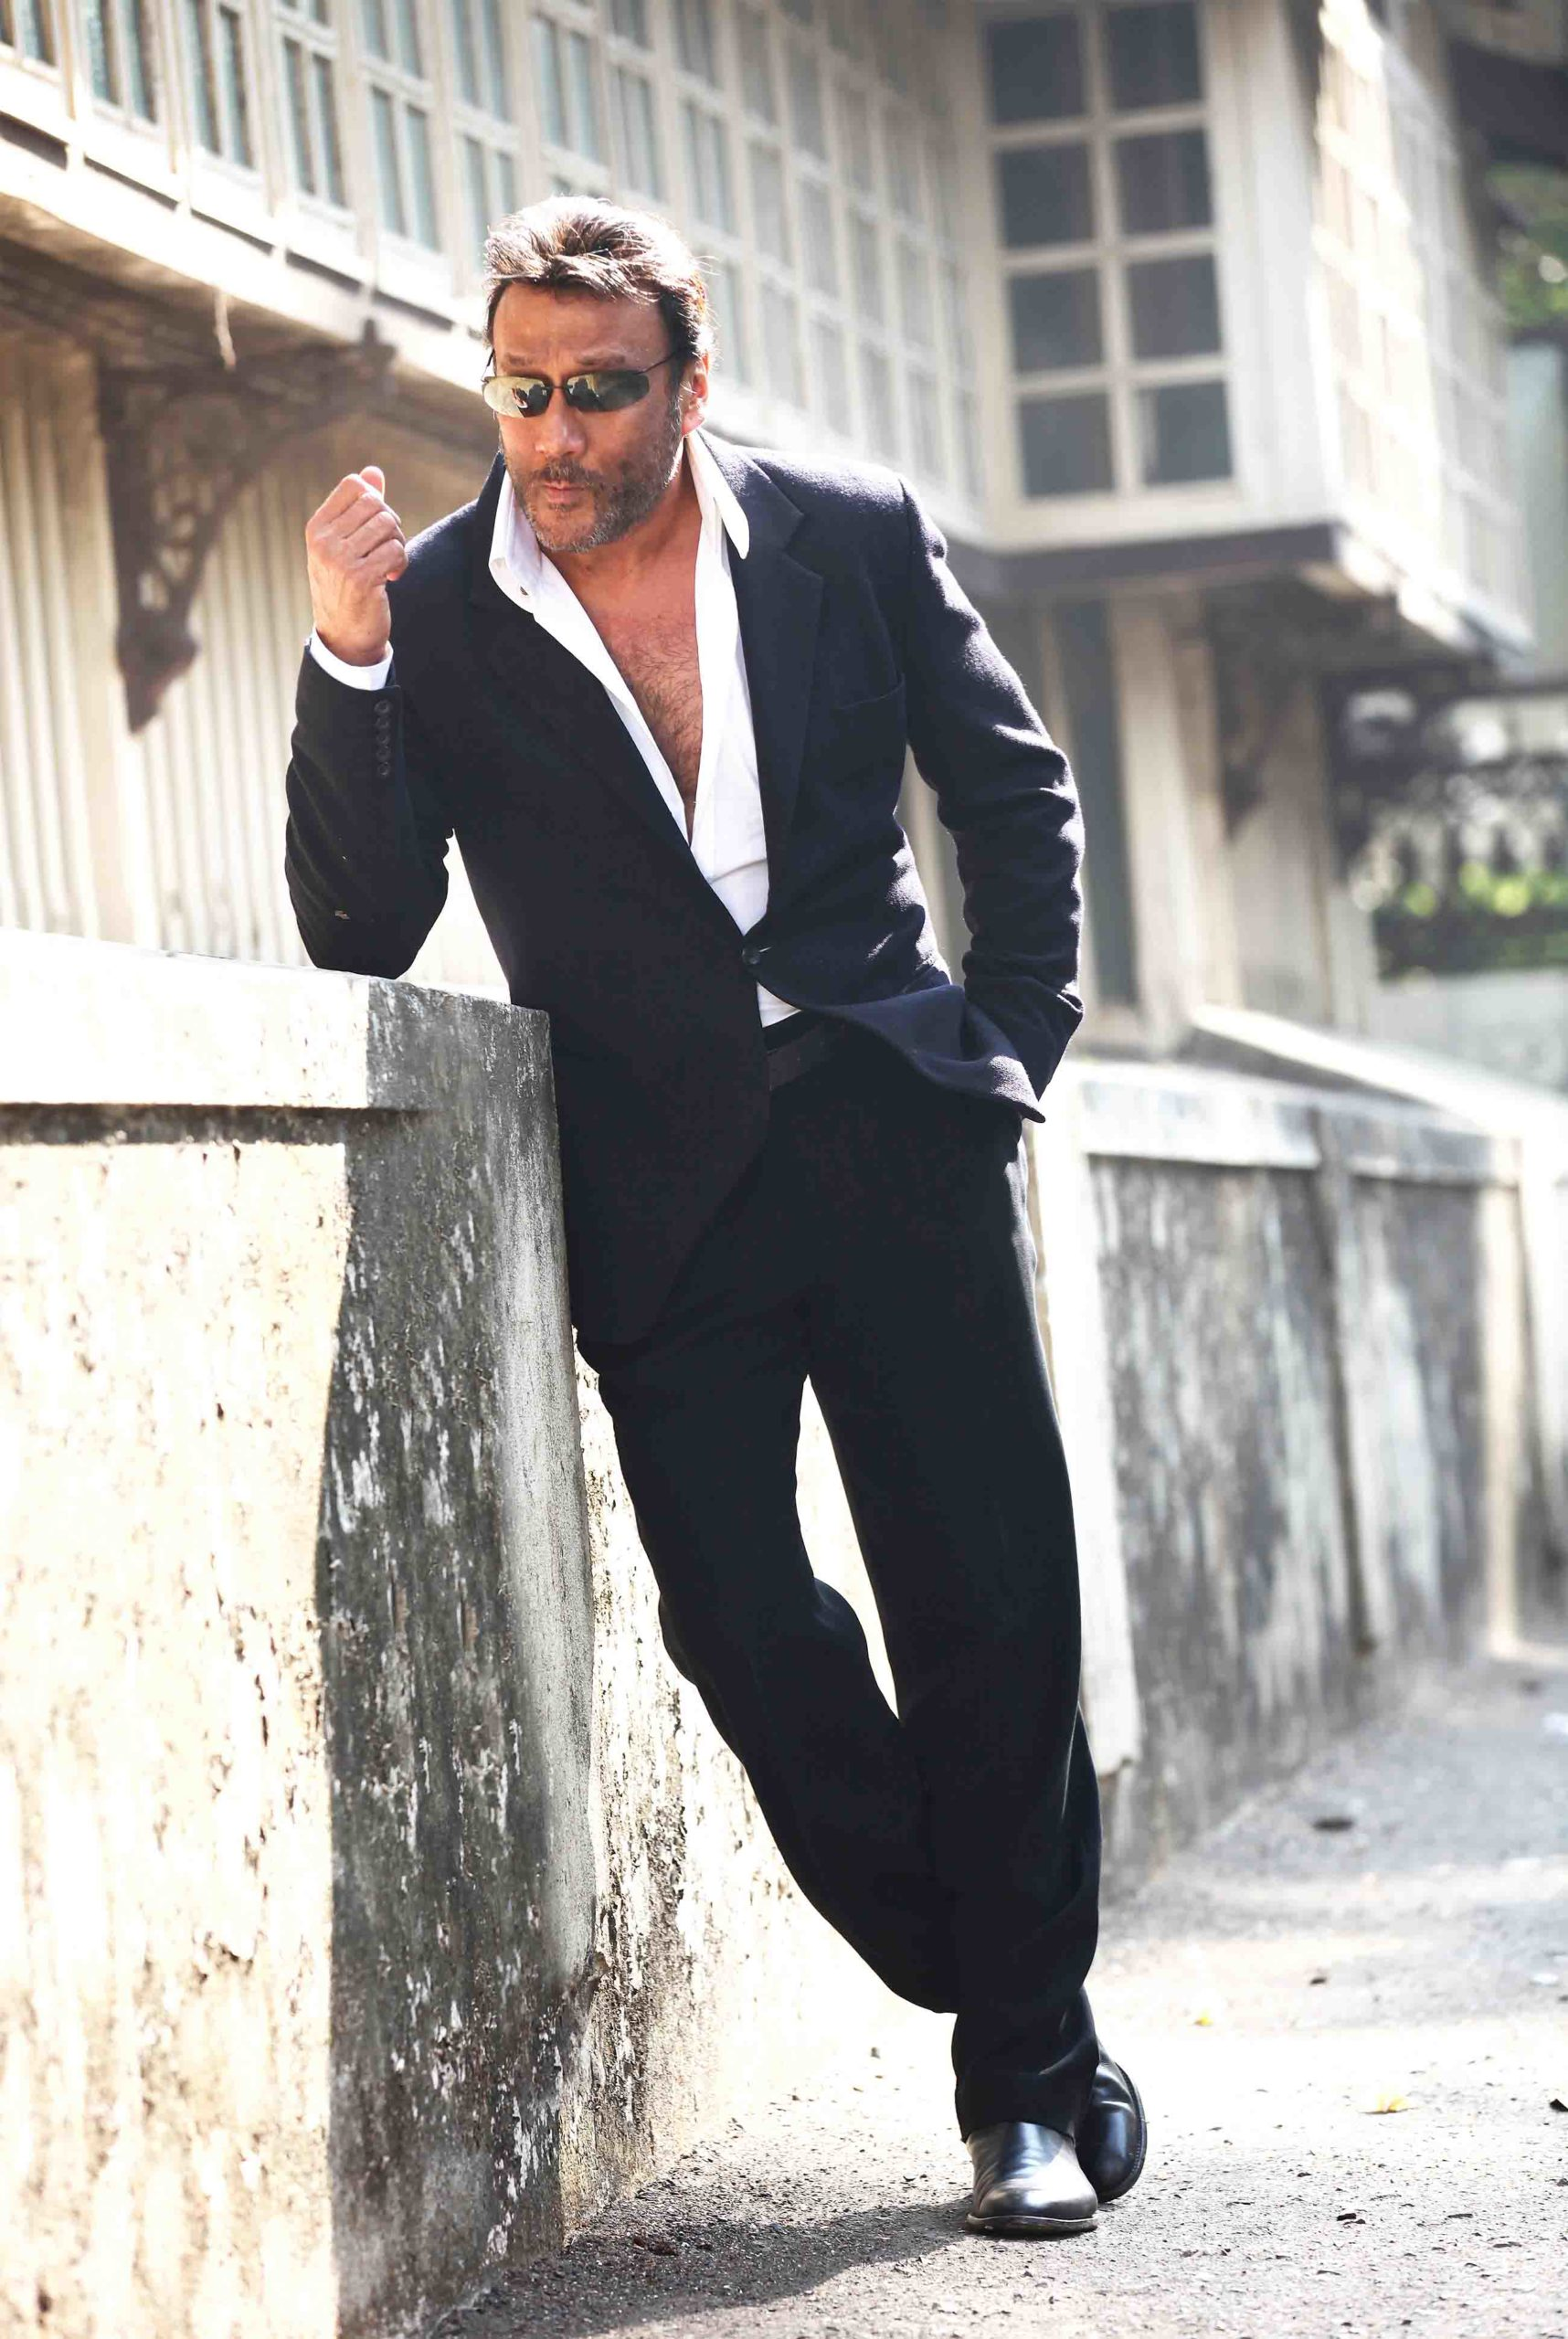 Jackie Shroff Age, Wife, Movie, Family, Daughter, Son, Date Of Birth, Net Worth, Height, Religion, Biography, Photo(image), History, Instagram, Twitter, Facebook, Wiki, Imdb, Website (5) (1)